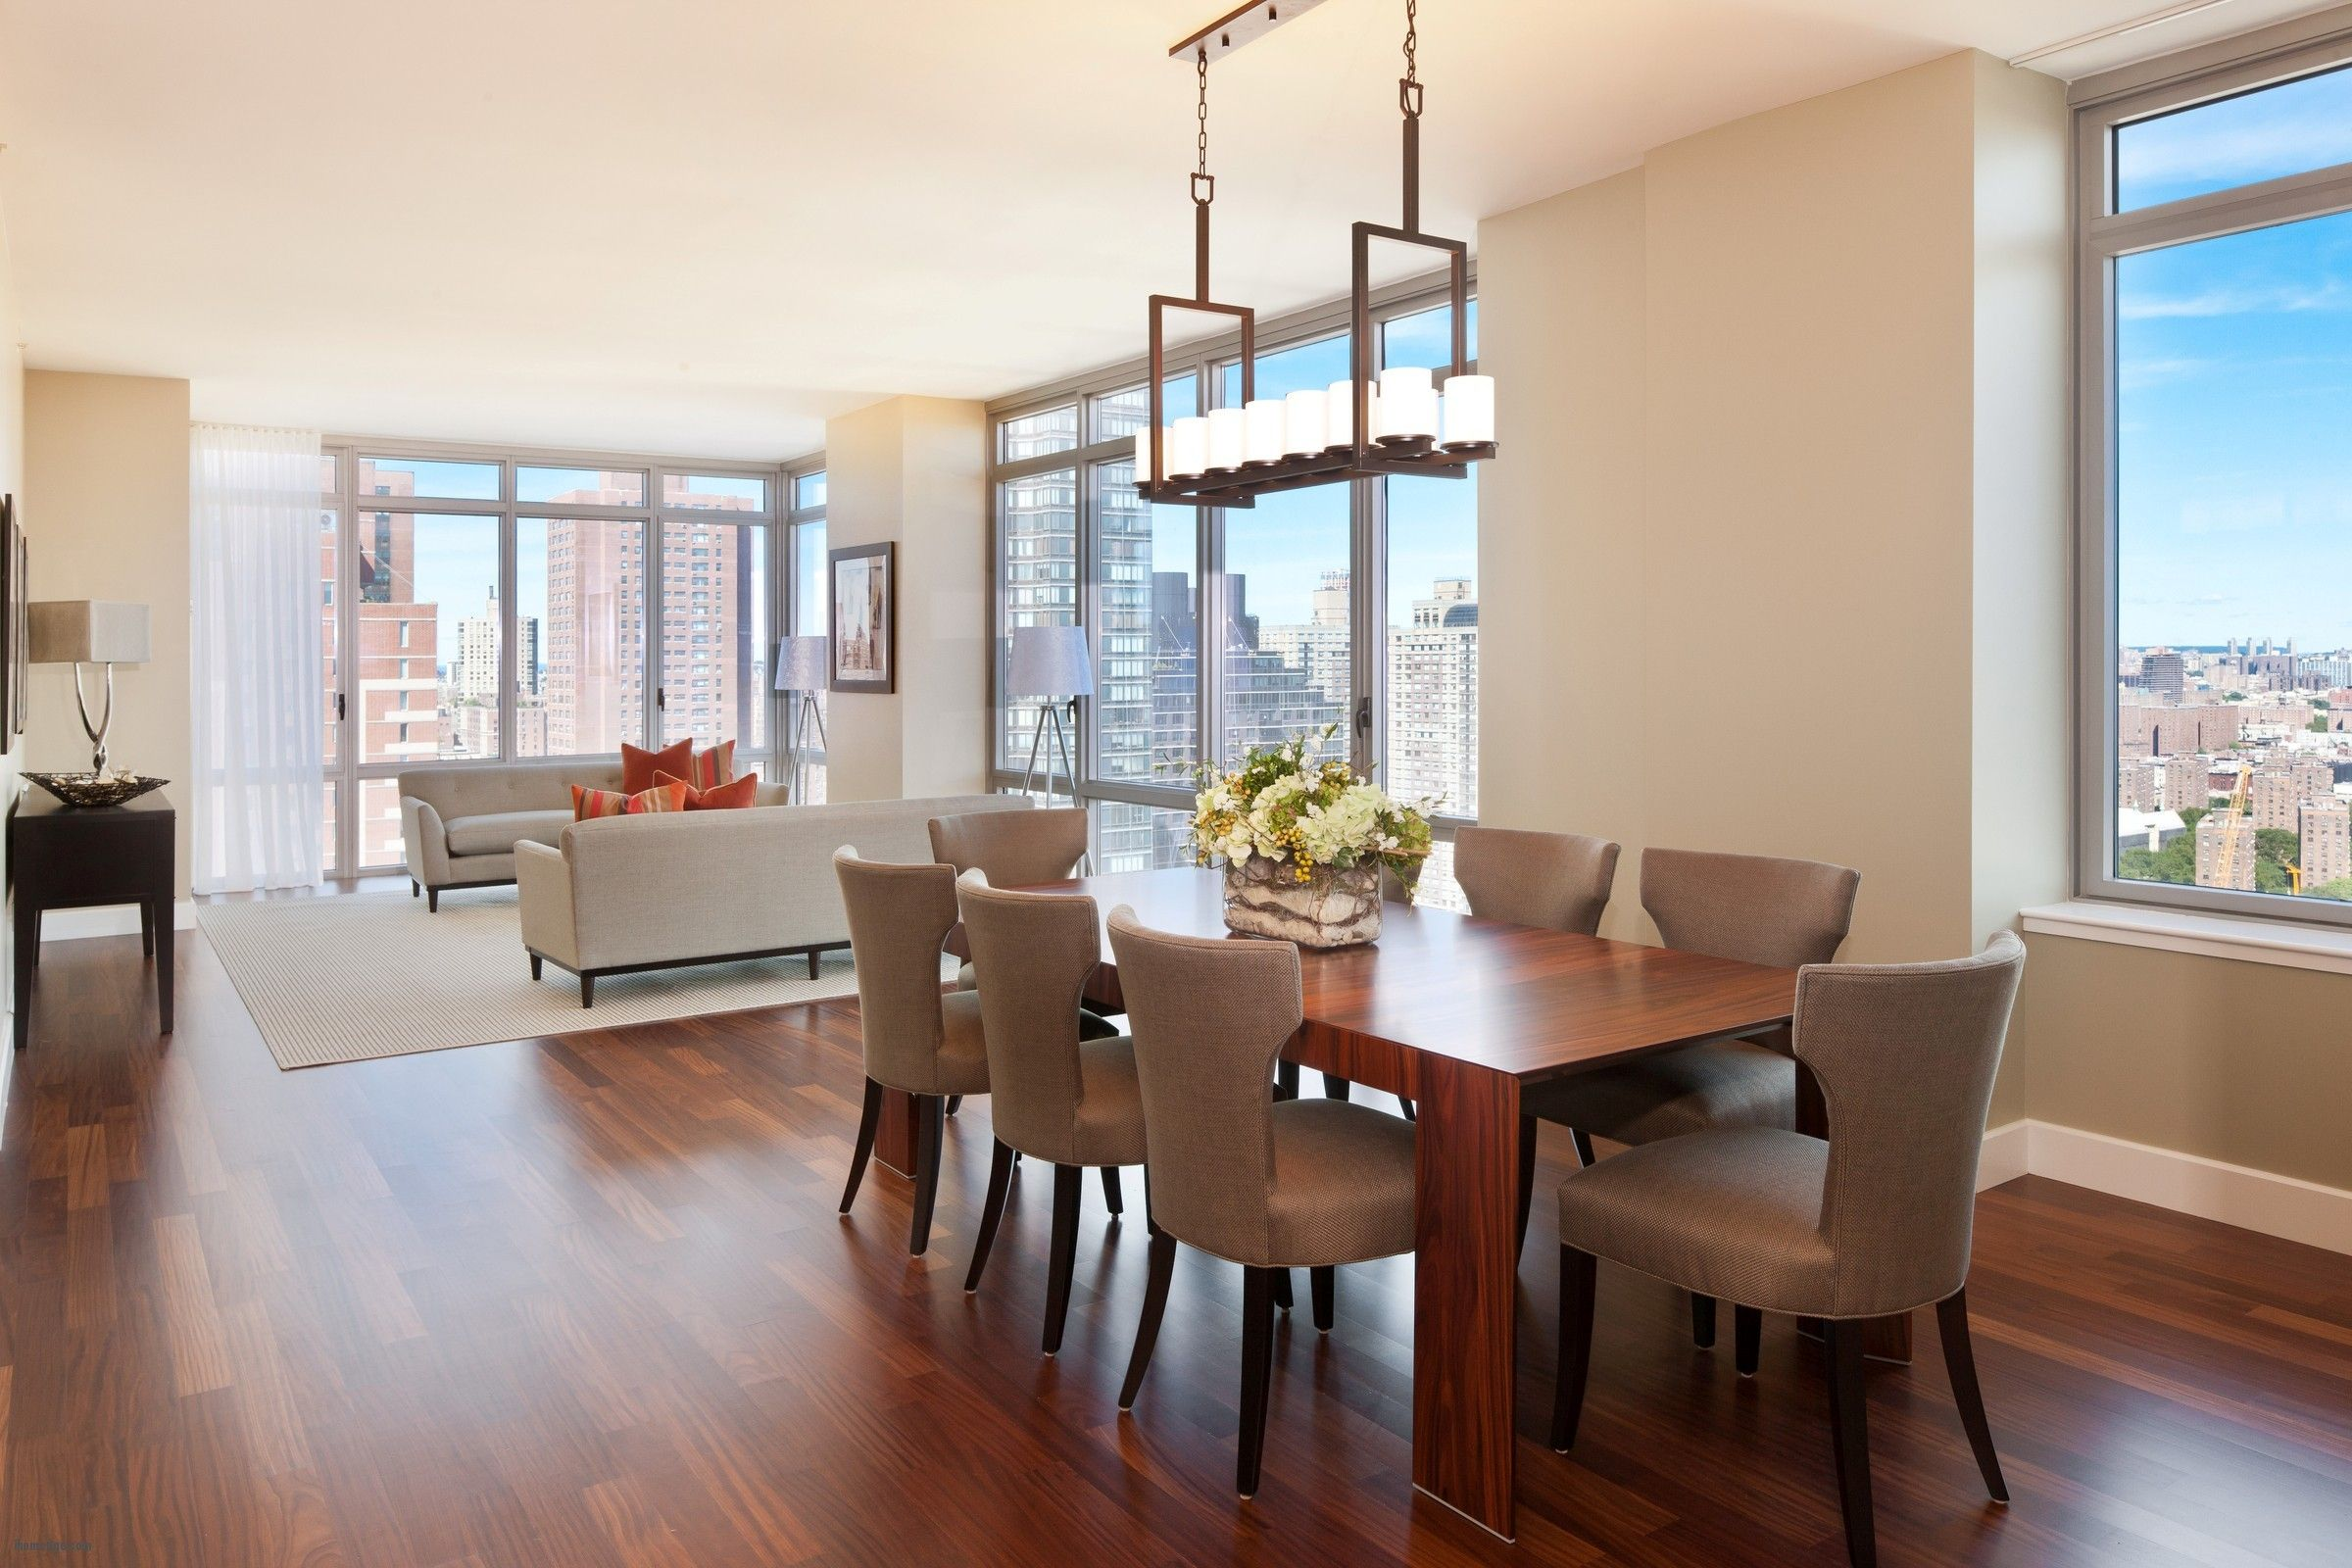 Inspirational Beautiful Z Gallerie Dining Room Full Image for